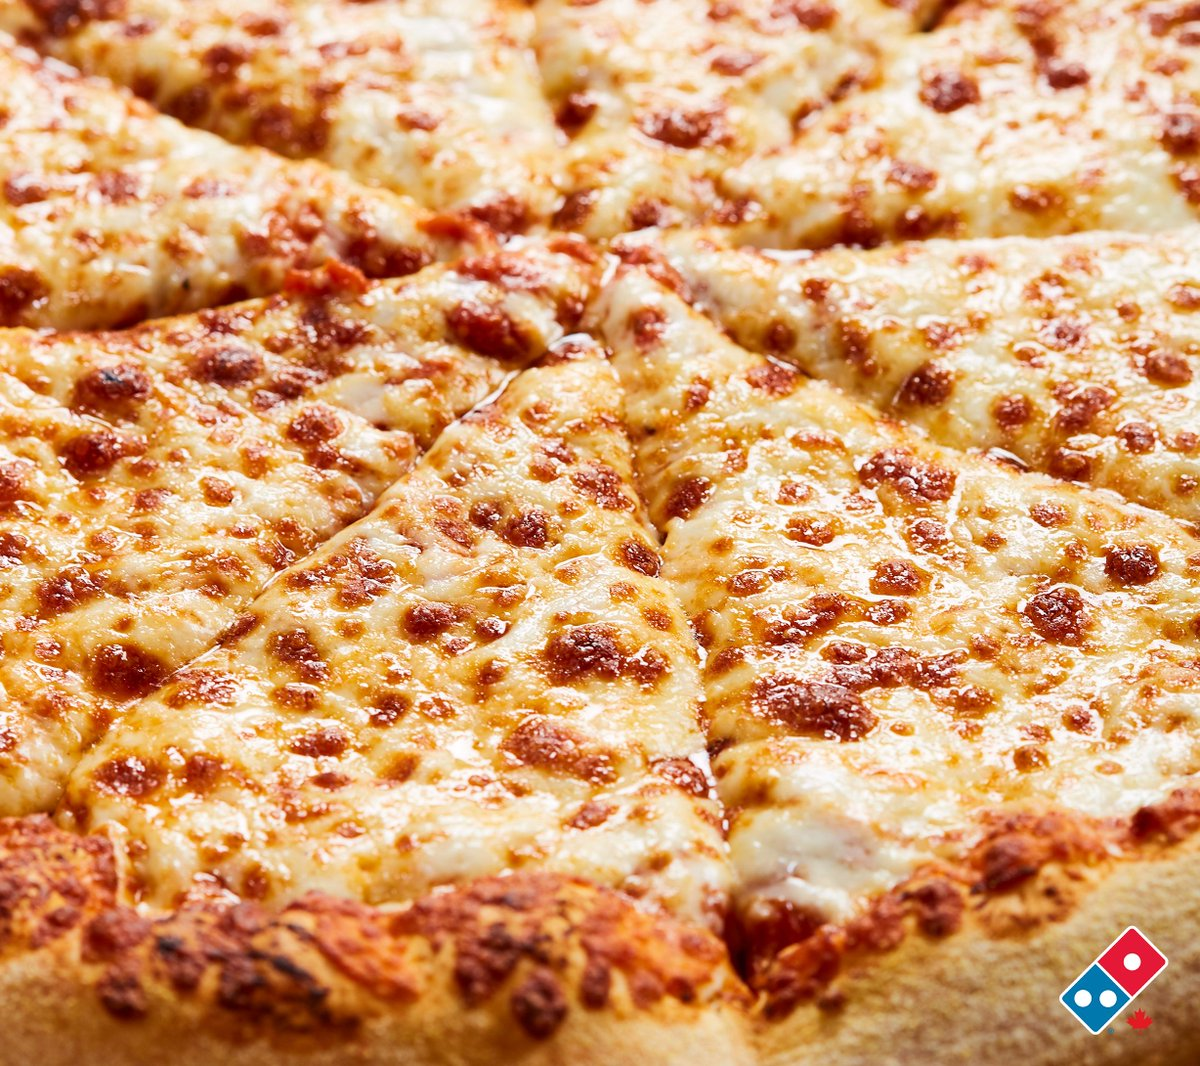 Behind every 🍕 order is someone who made a very good decision. 🕶 https://t.co/xmx90AE9zK